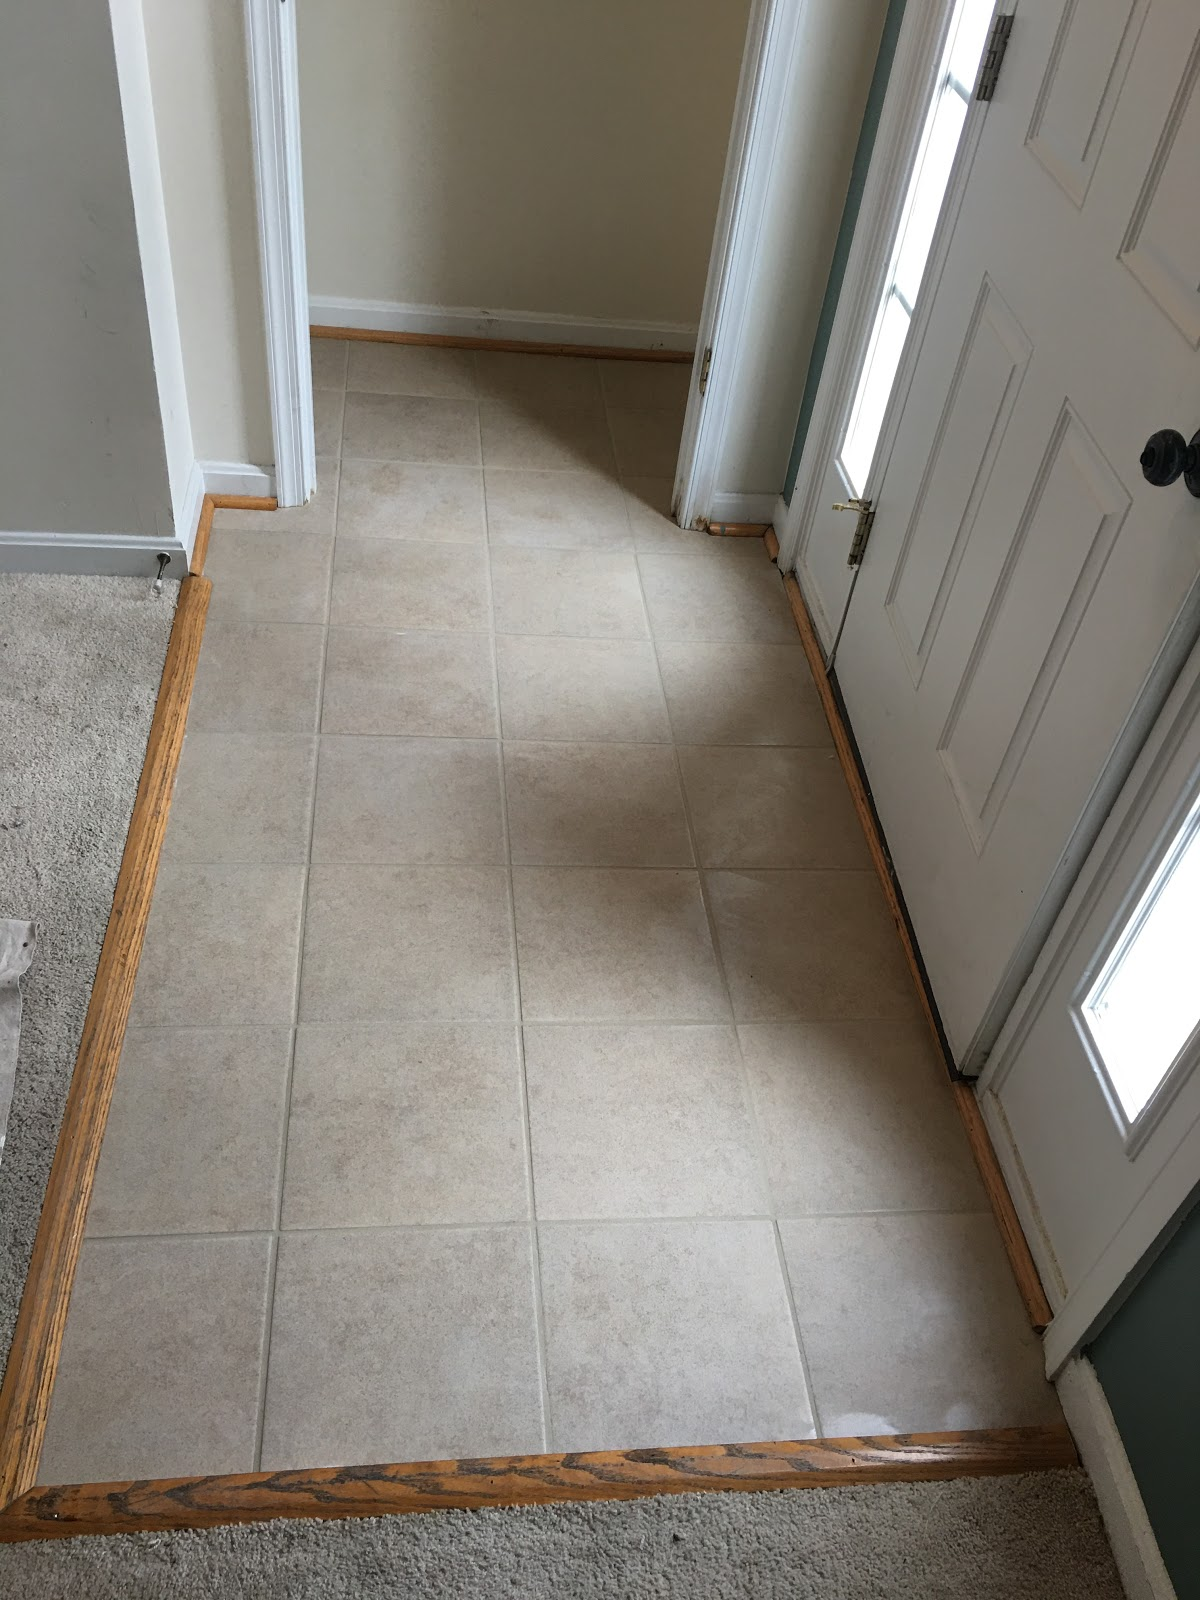 A Tiled Floor | Home Repair Maintenance in Fulton, MD